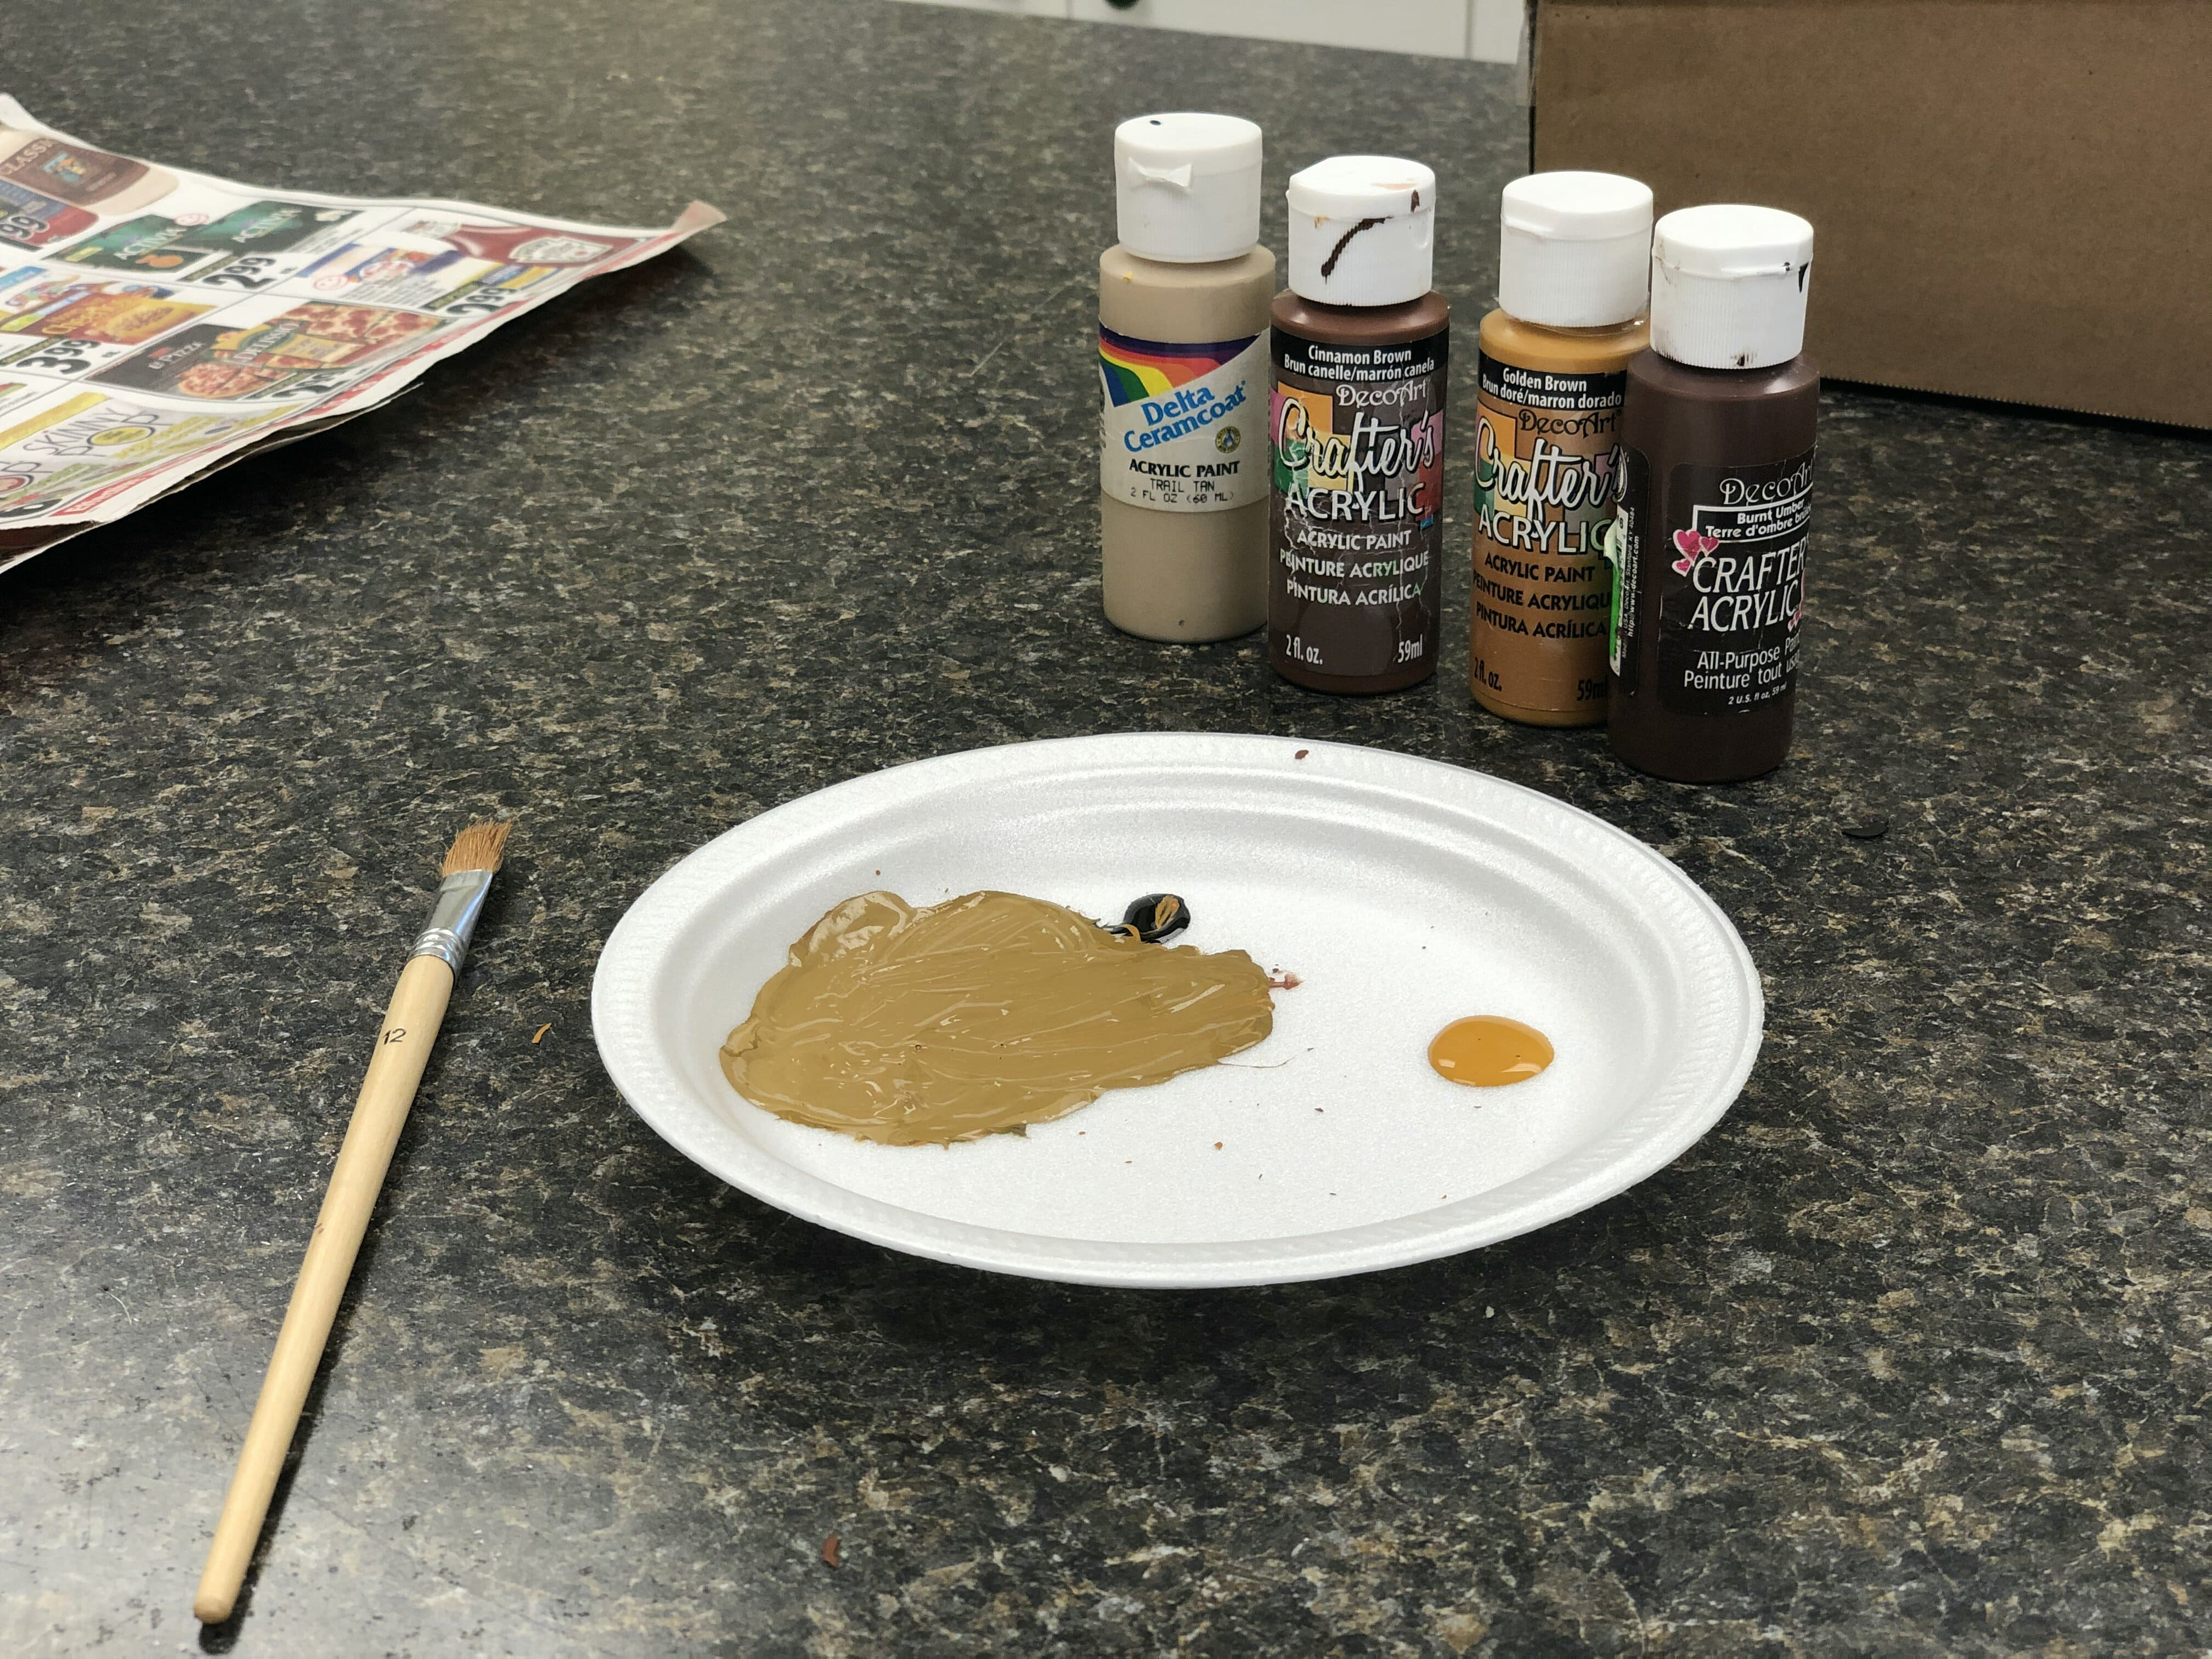 All four shades of brown paint used in this craft and a mixing tray and paintbrush in front of the paint with the colours that are going to be used to paint the popsicle sticks